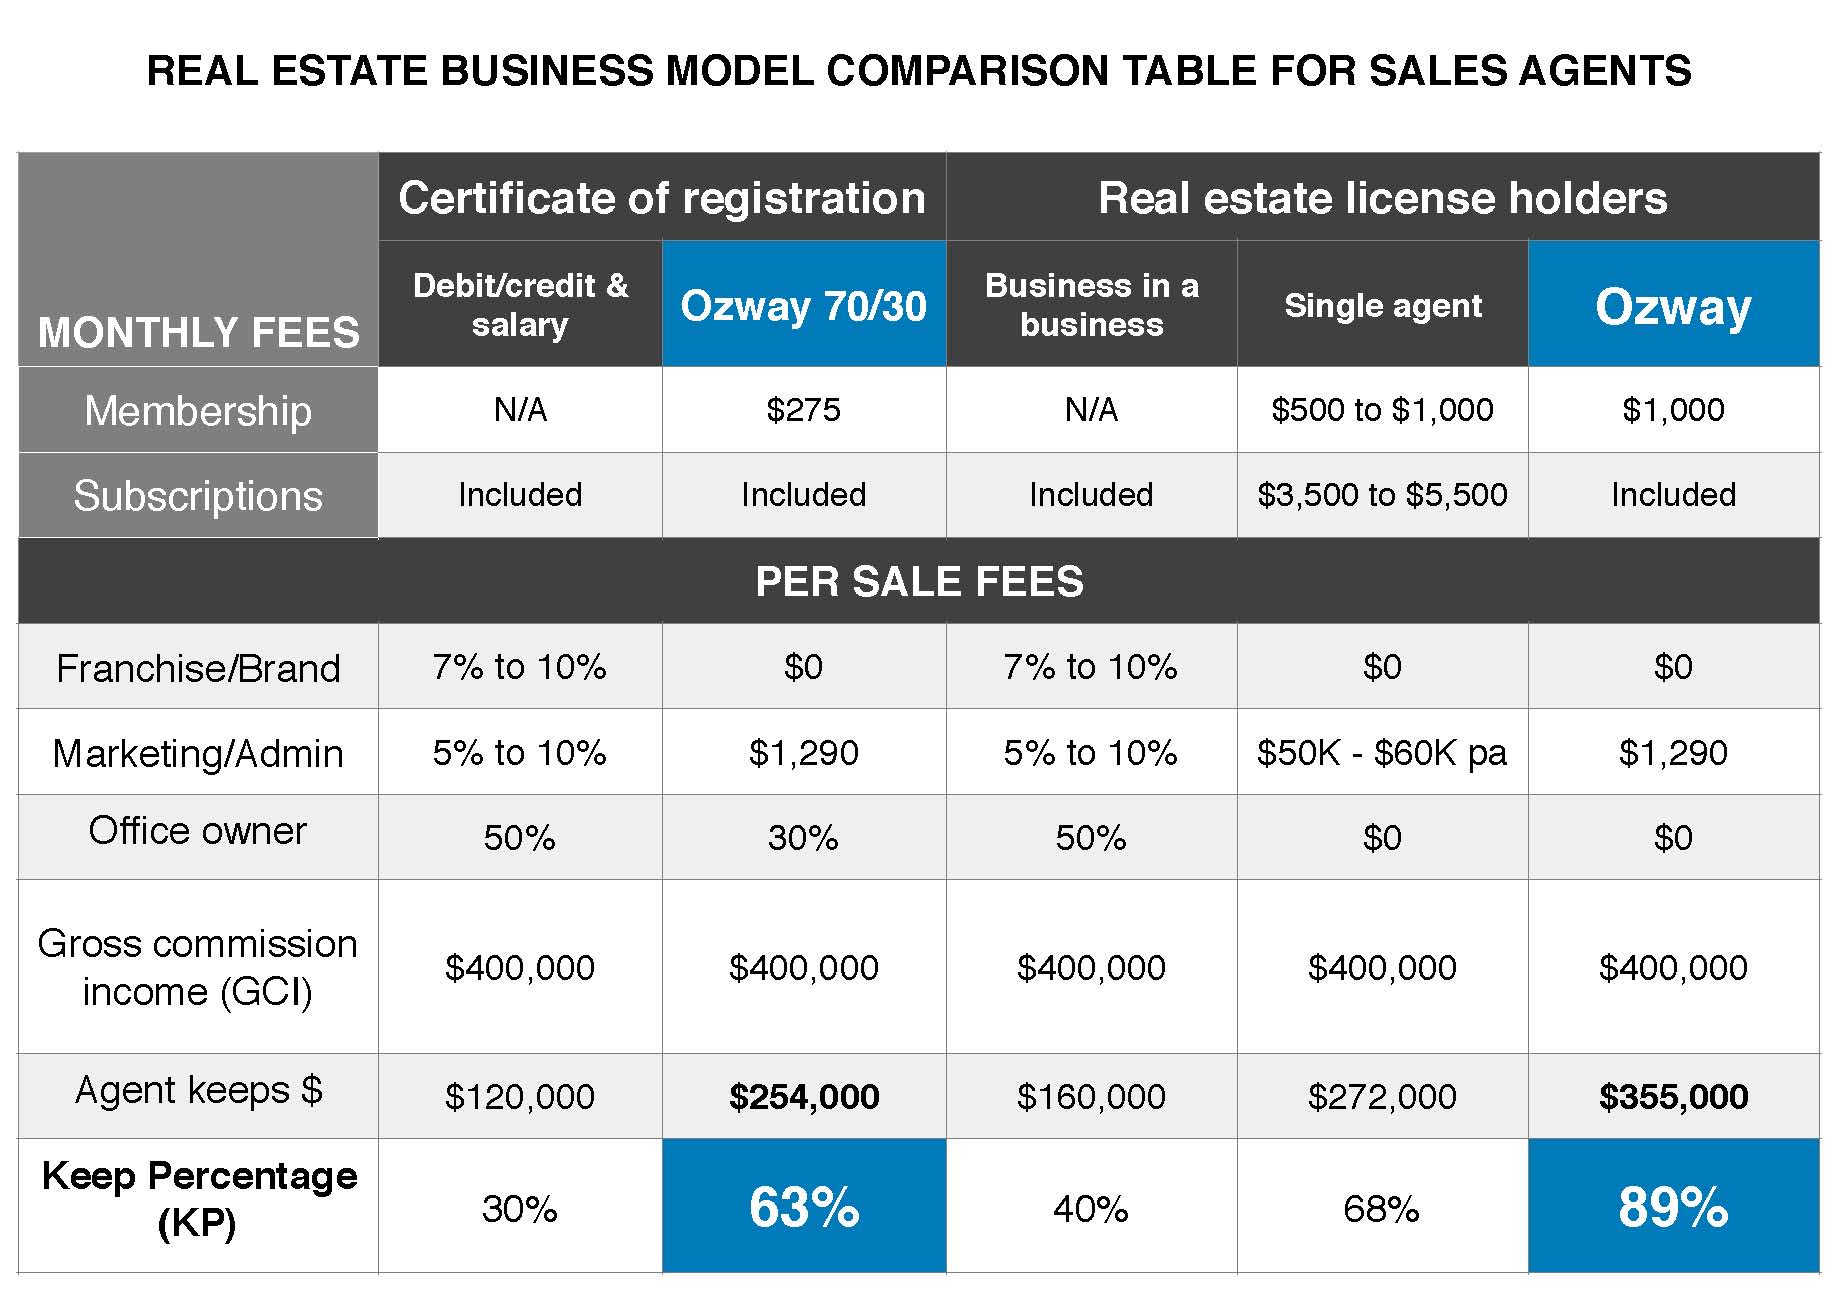 Commission structure comparison table for real estate agents